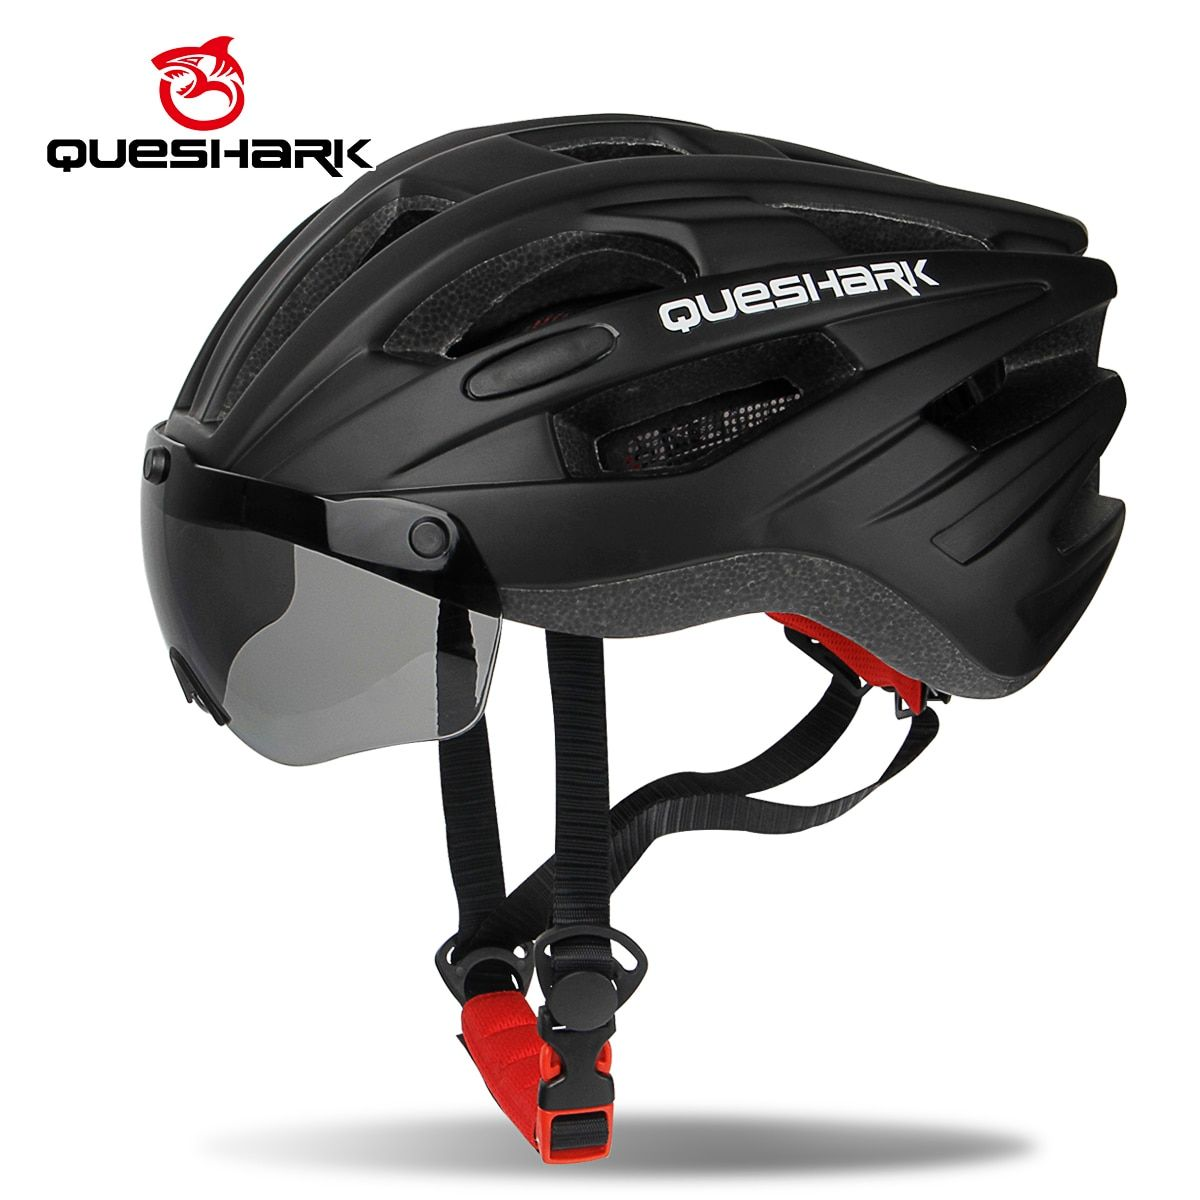 QUESHARK Windproof Bicycle Helmet Safety Riding Caps Breathable Mountain Road MTB Bike Helmets with Goggles Removable Lens